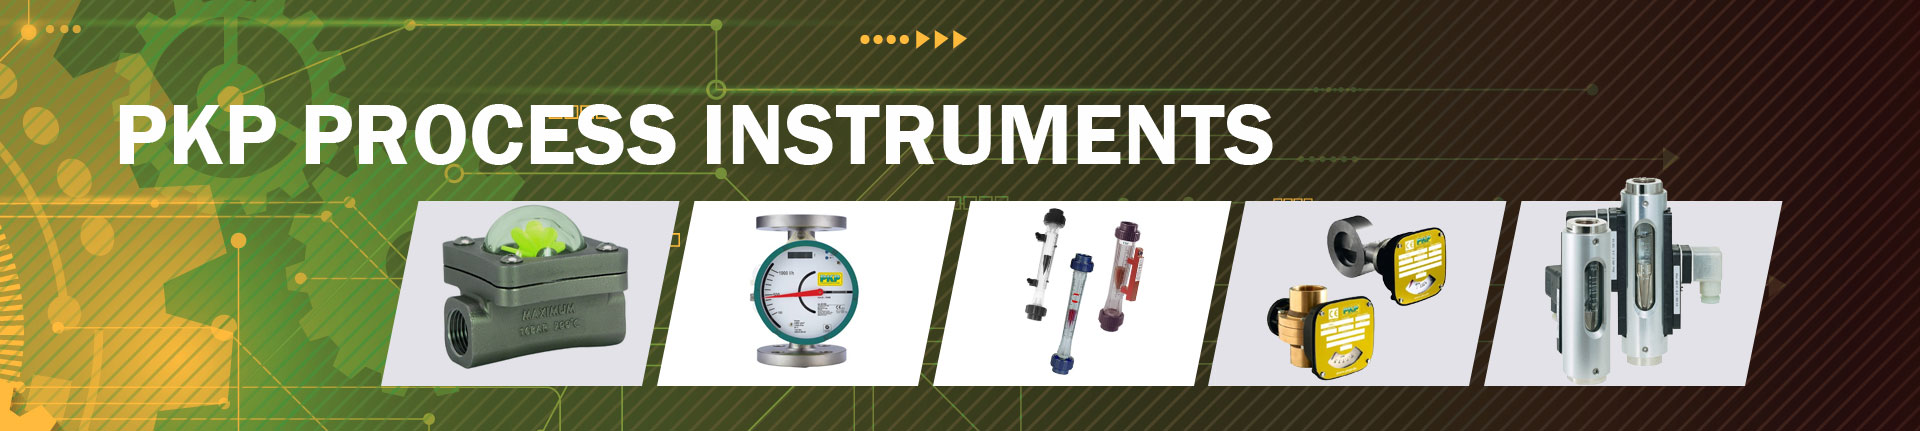 PKP-instruments